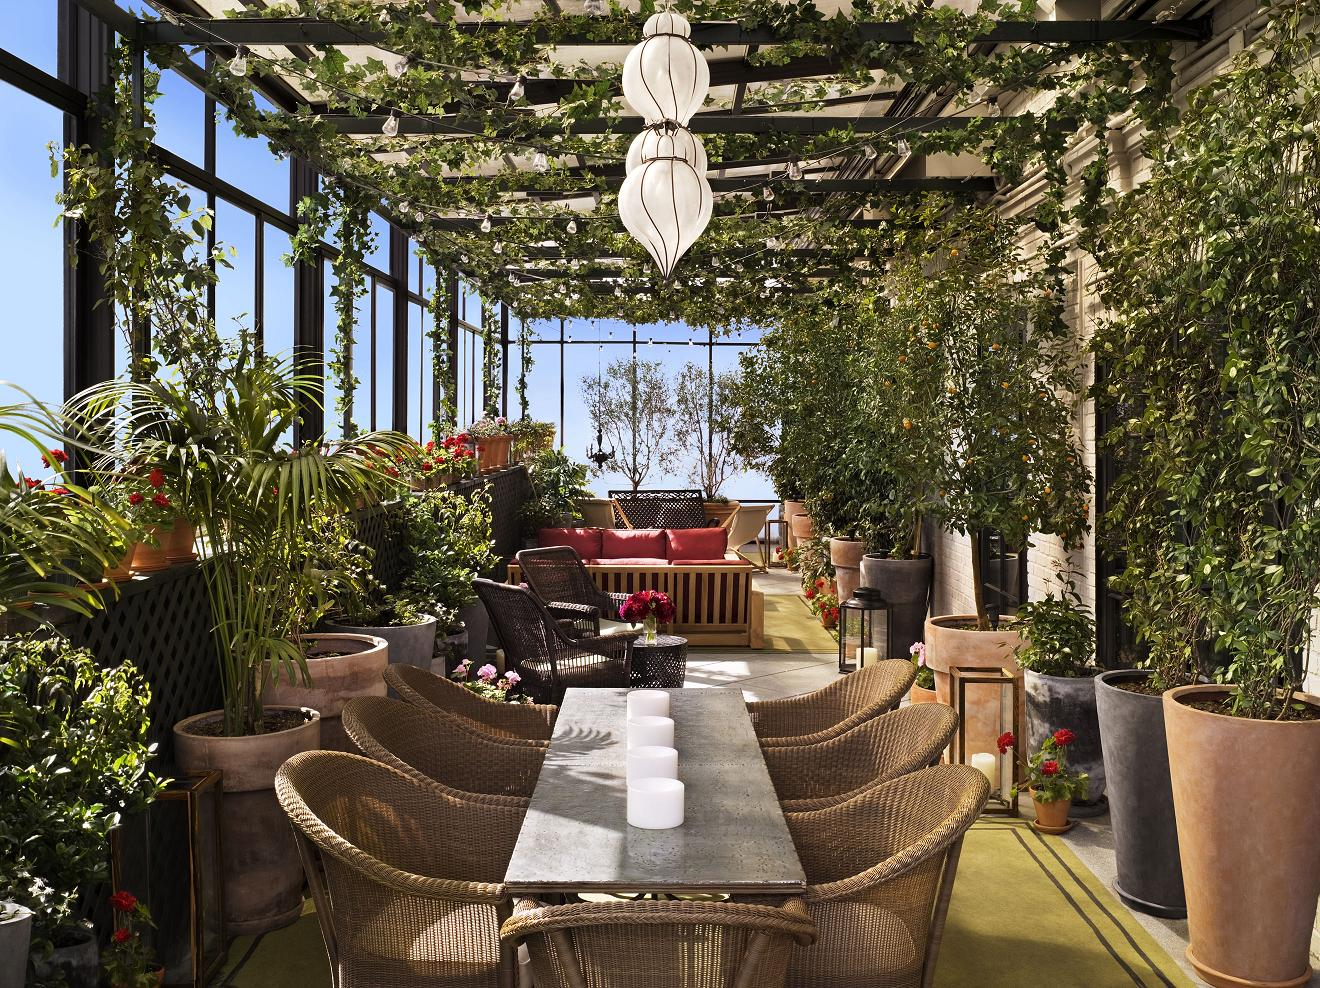 London Greenhouse Hotel